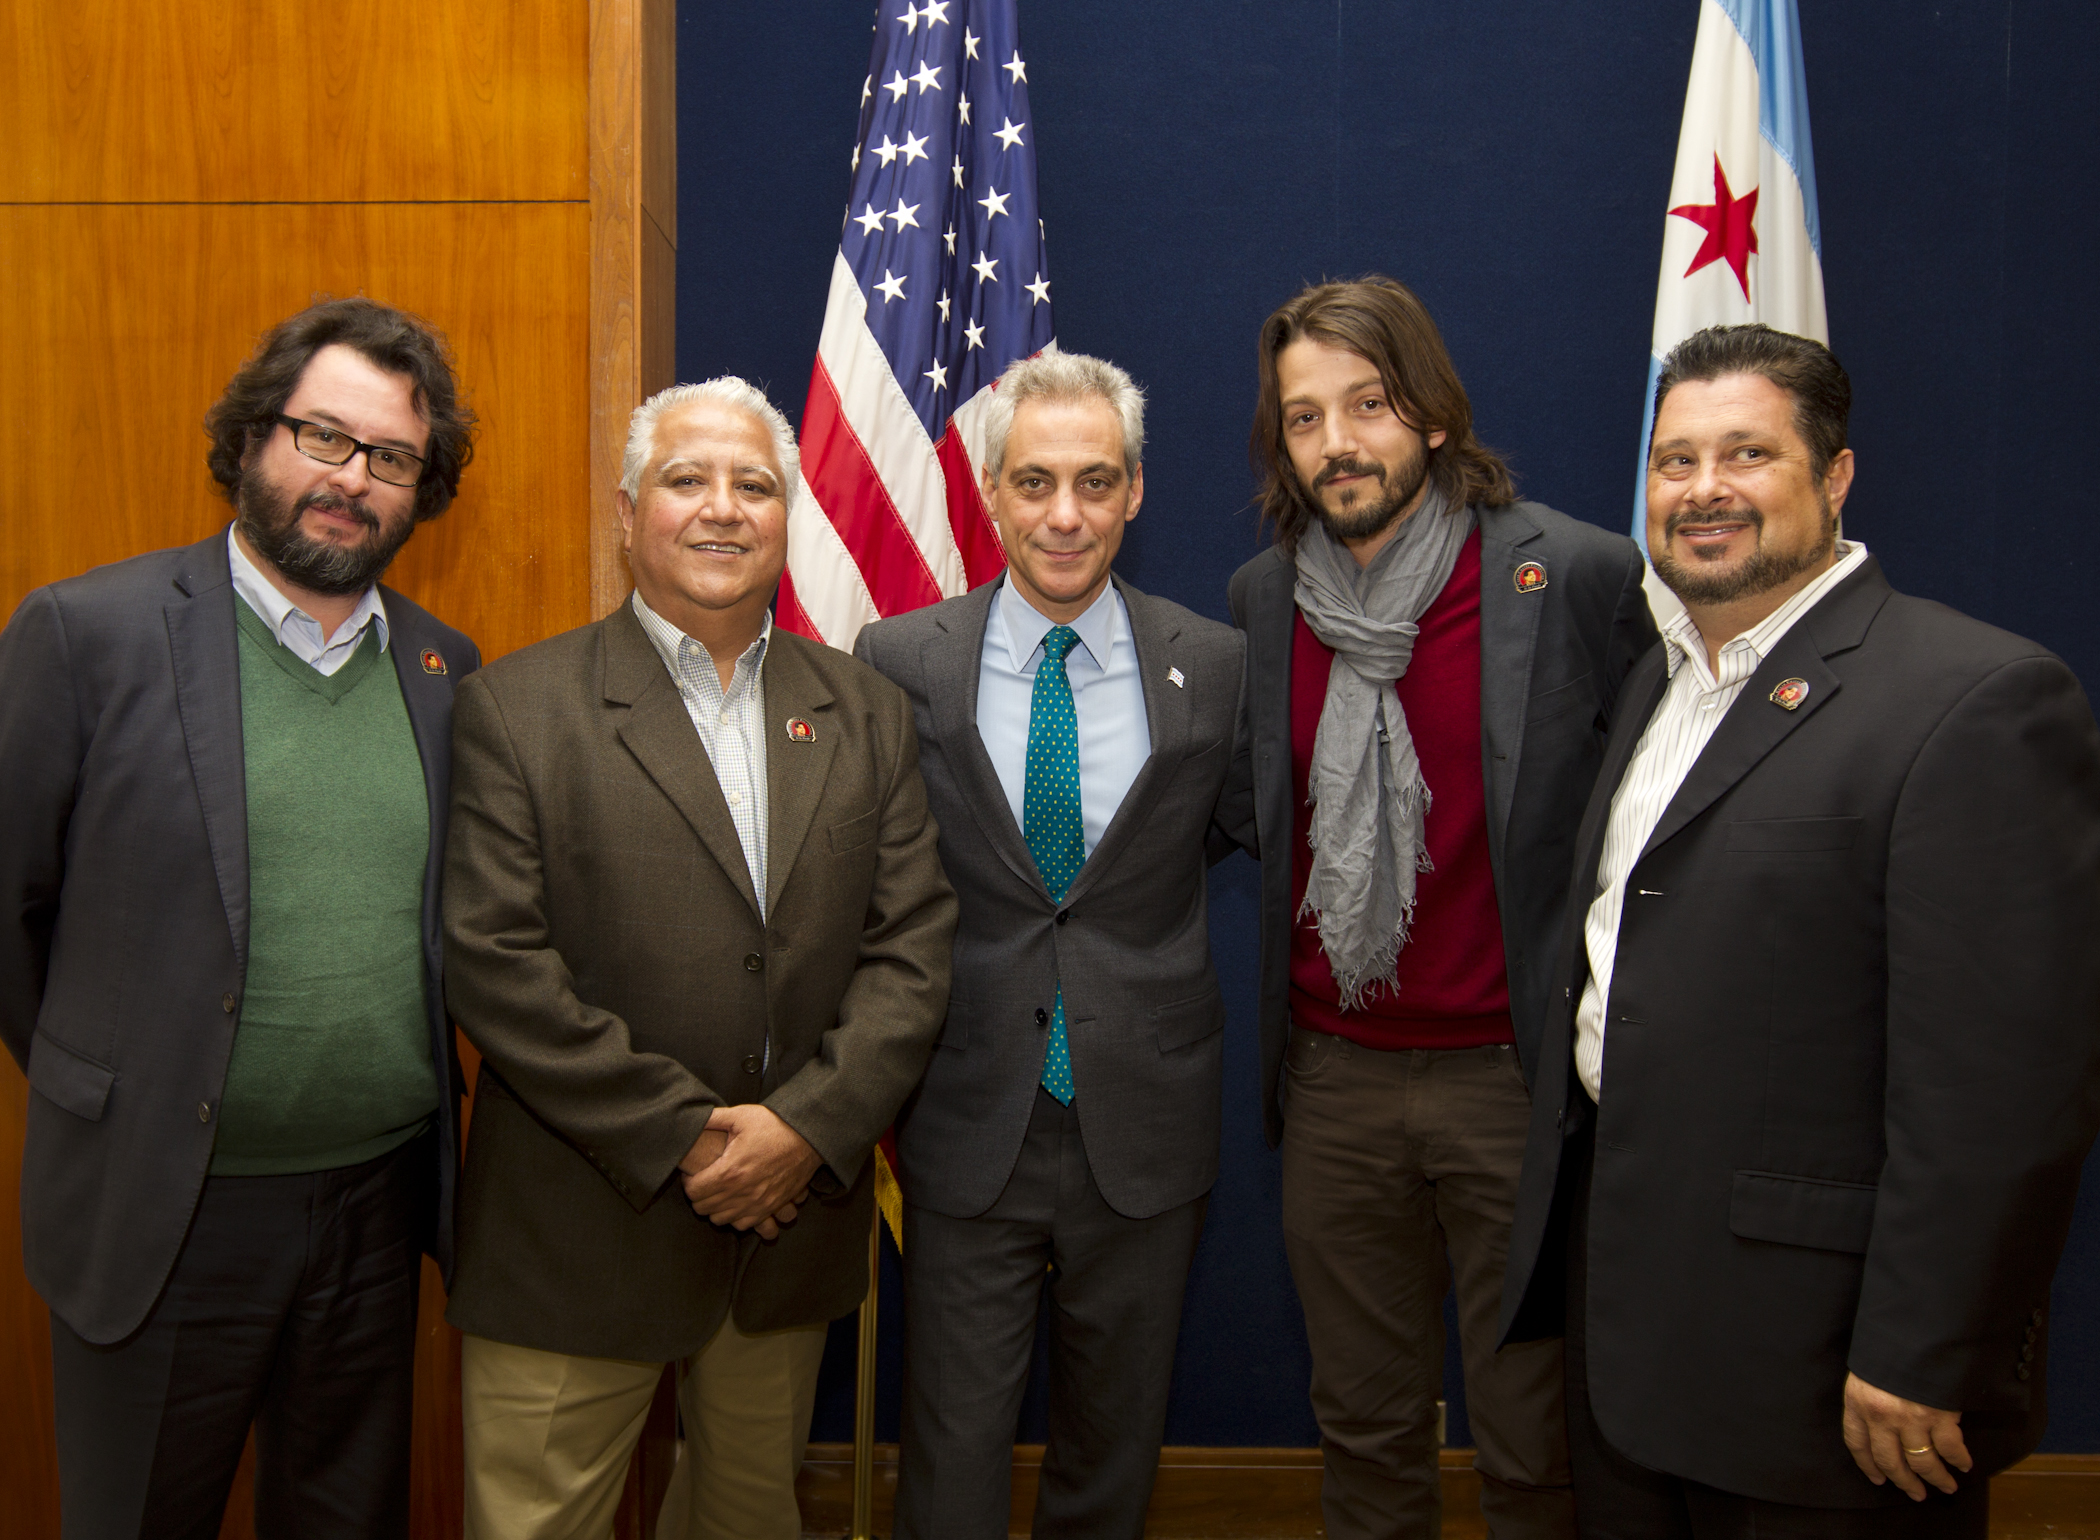 Chicago Mayor Rahm Emanuel meets with Paul Chavez, President of the Cesar Chavez Foundation and film director Diego Luna.